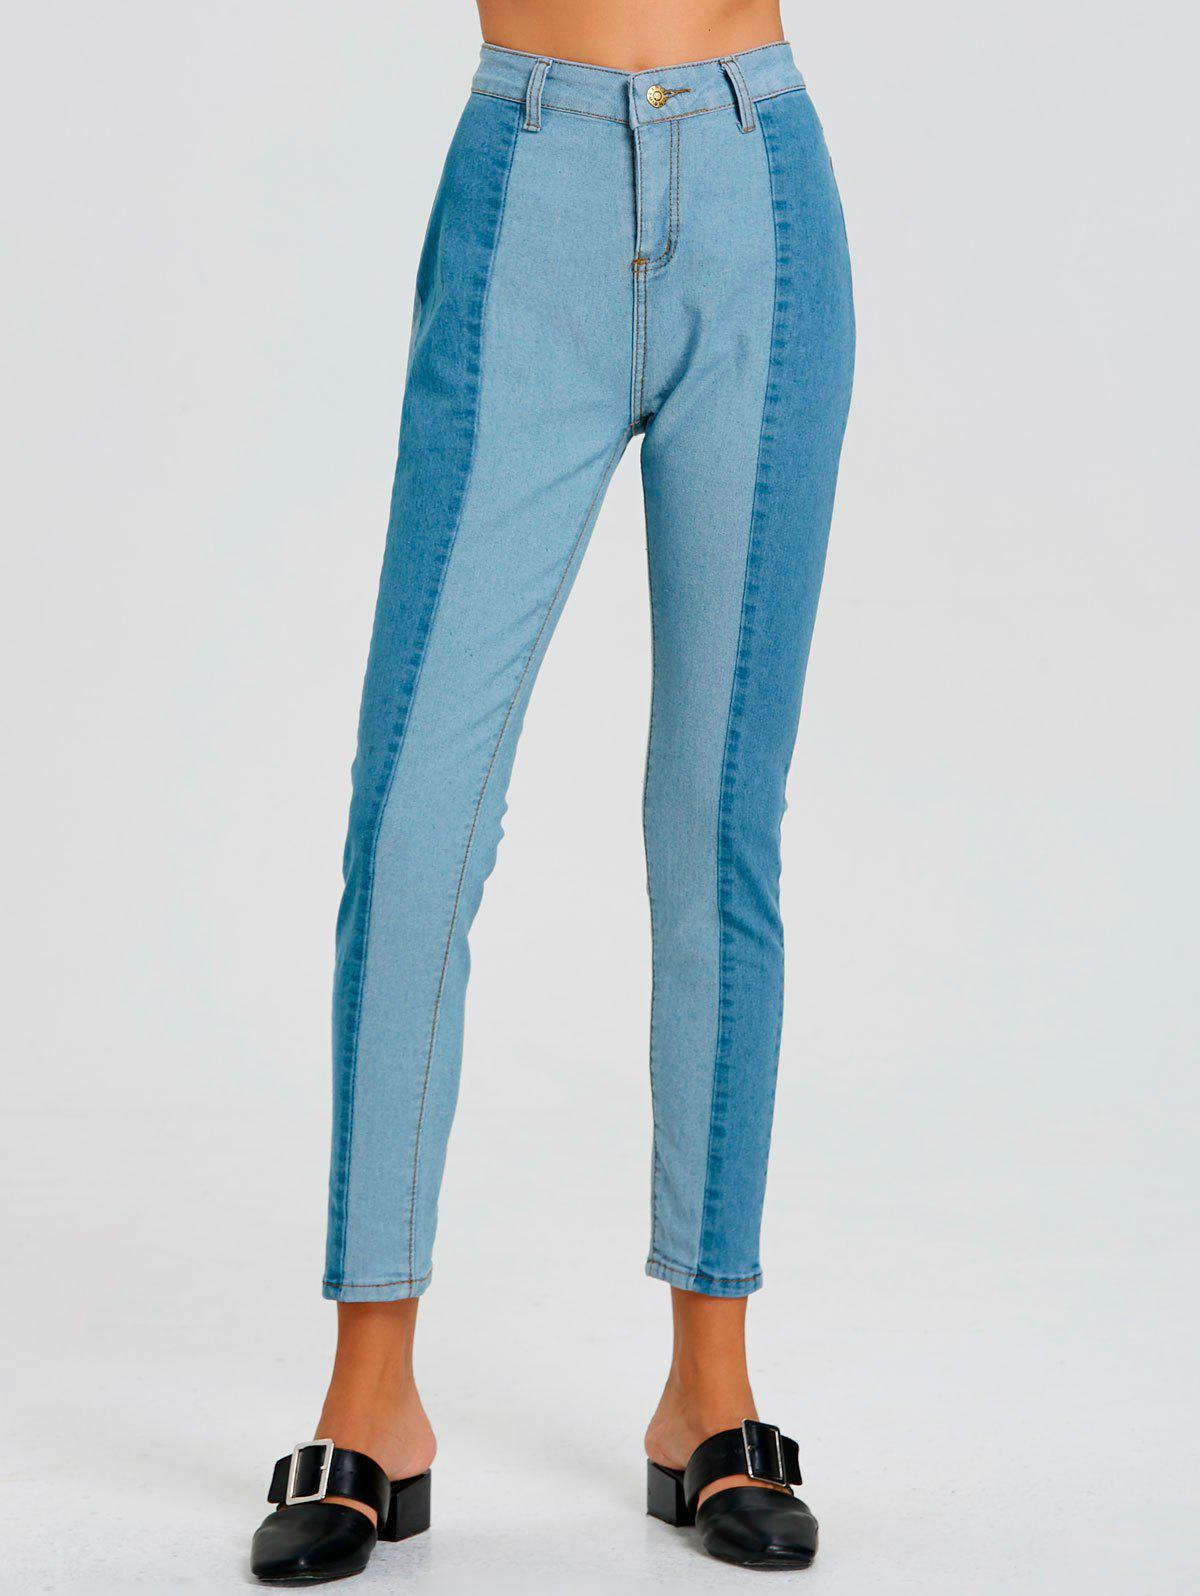 Unique Color Block Striped Pencil Jeans